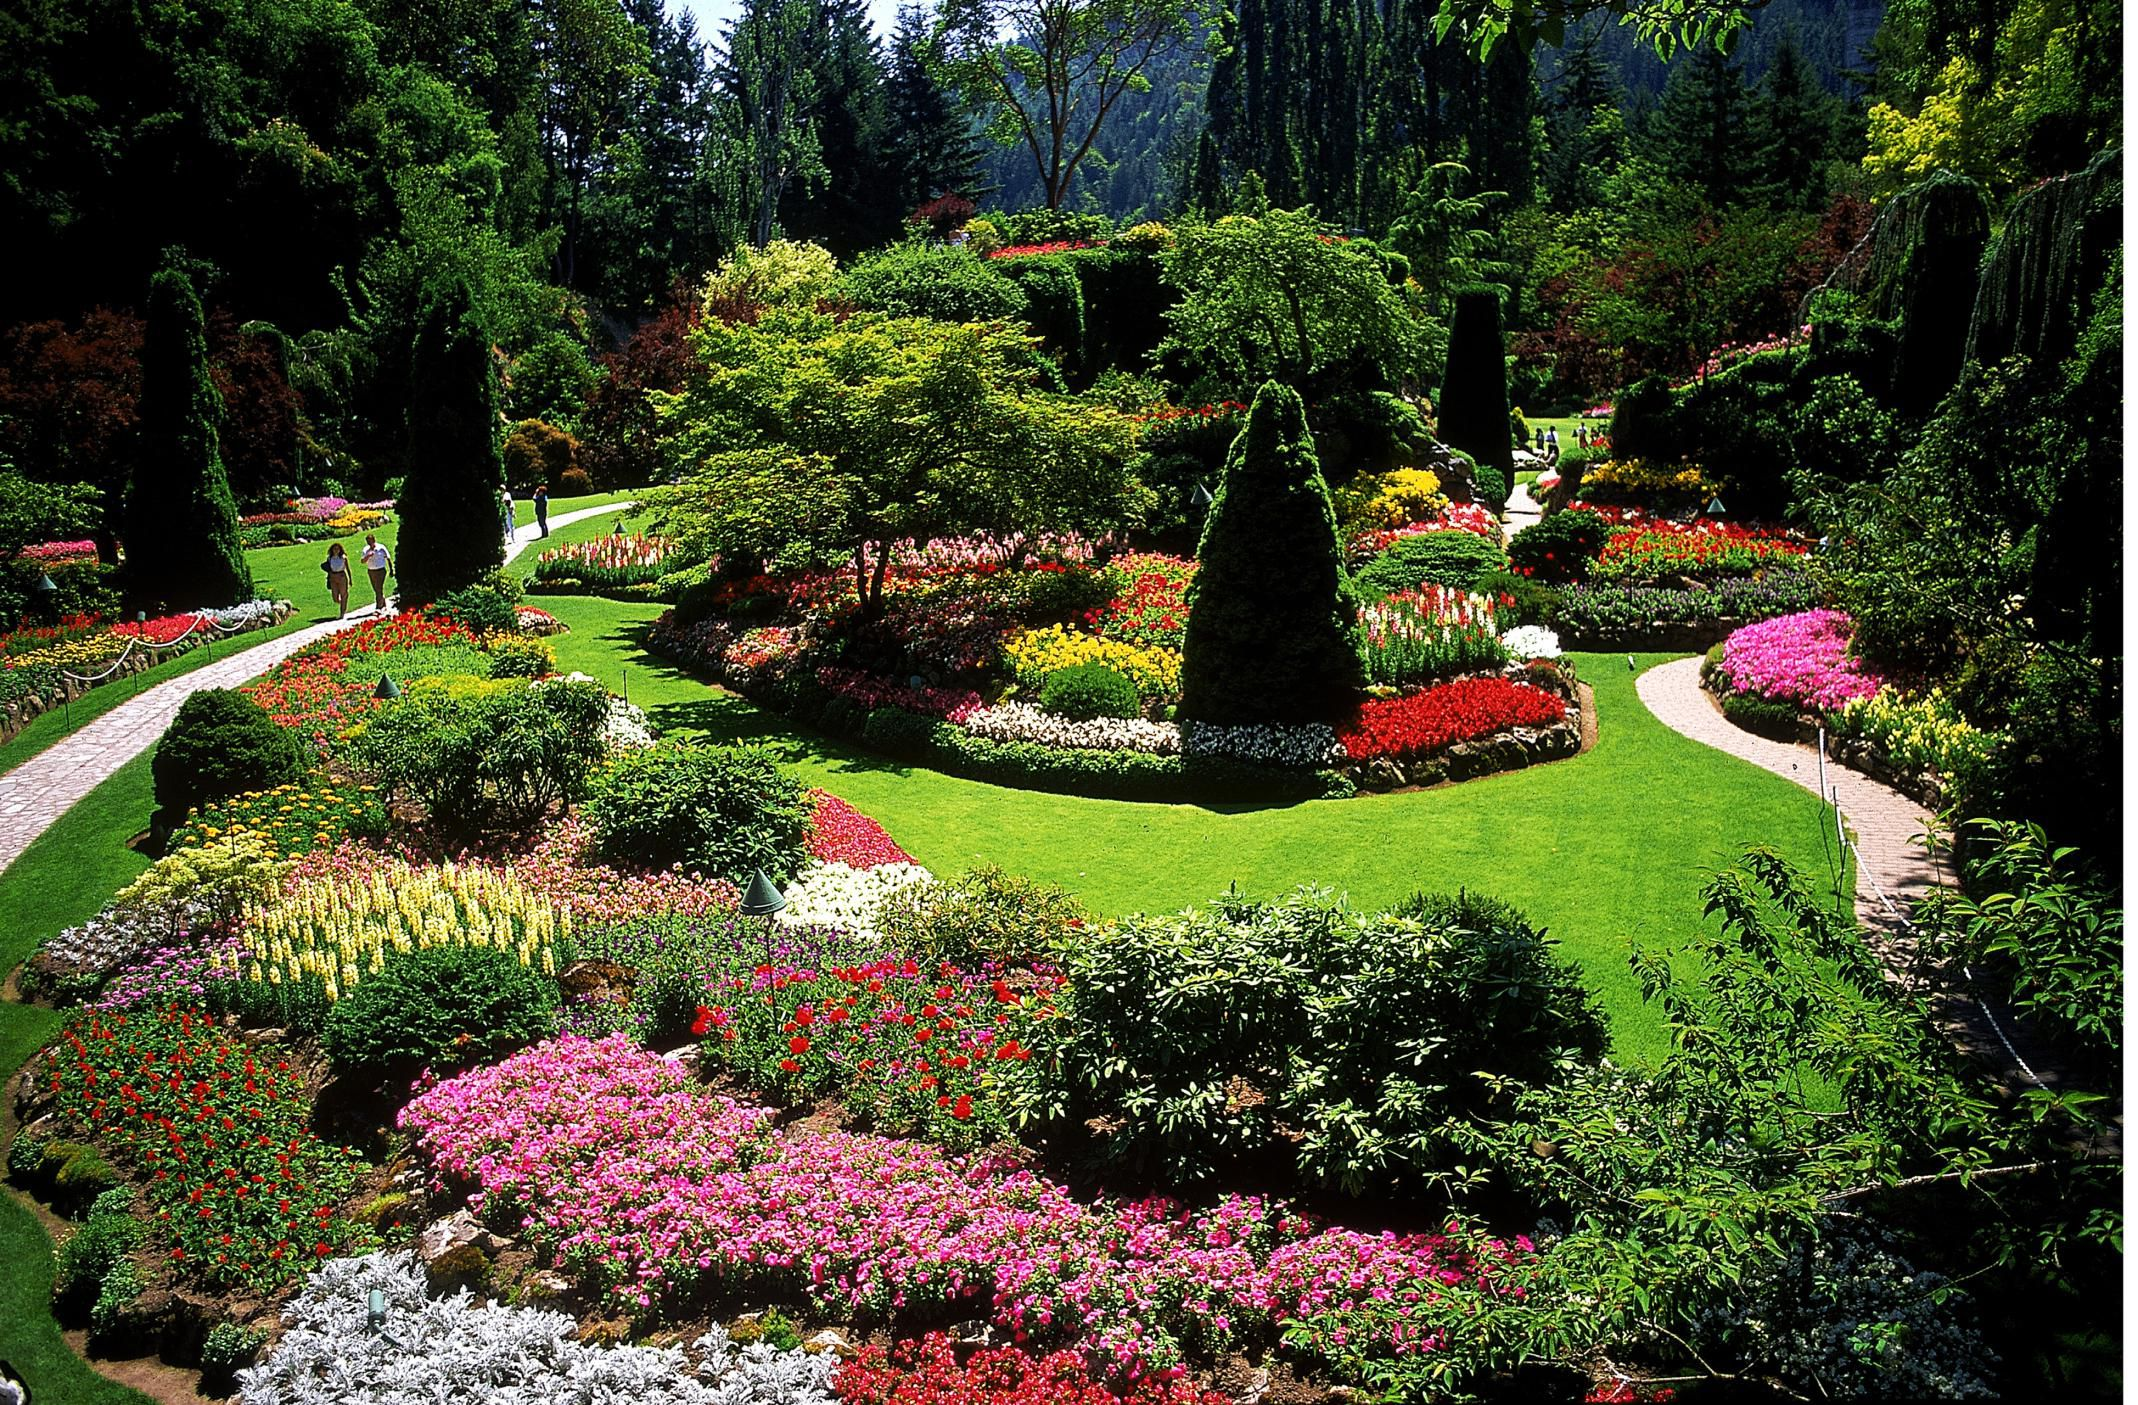 Designing a Garden With Landscape Design Principles on Landscape Garden Designs For Small Gardens id=91633